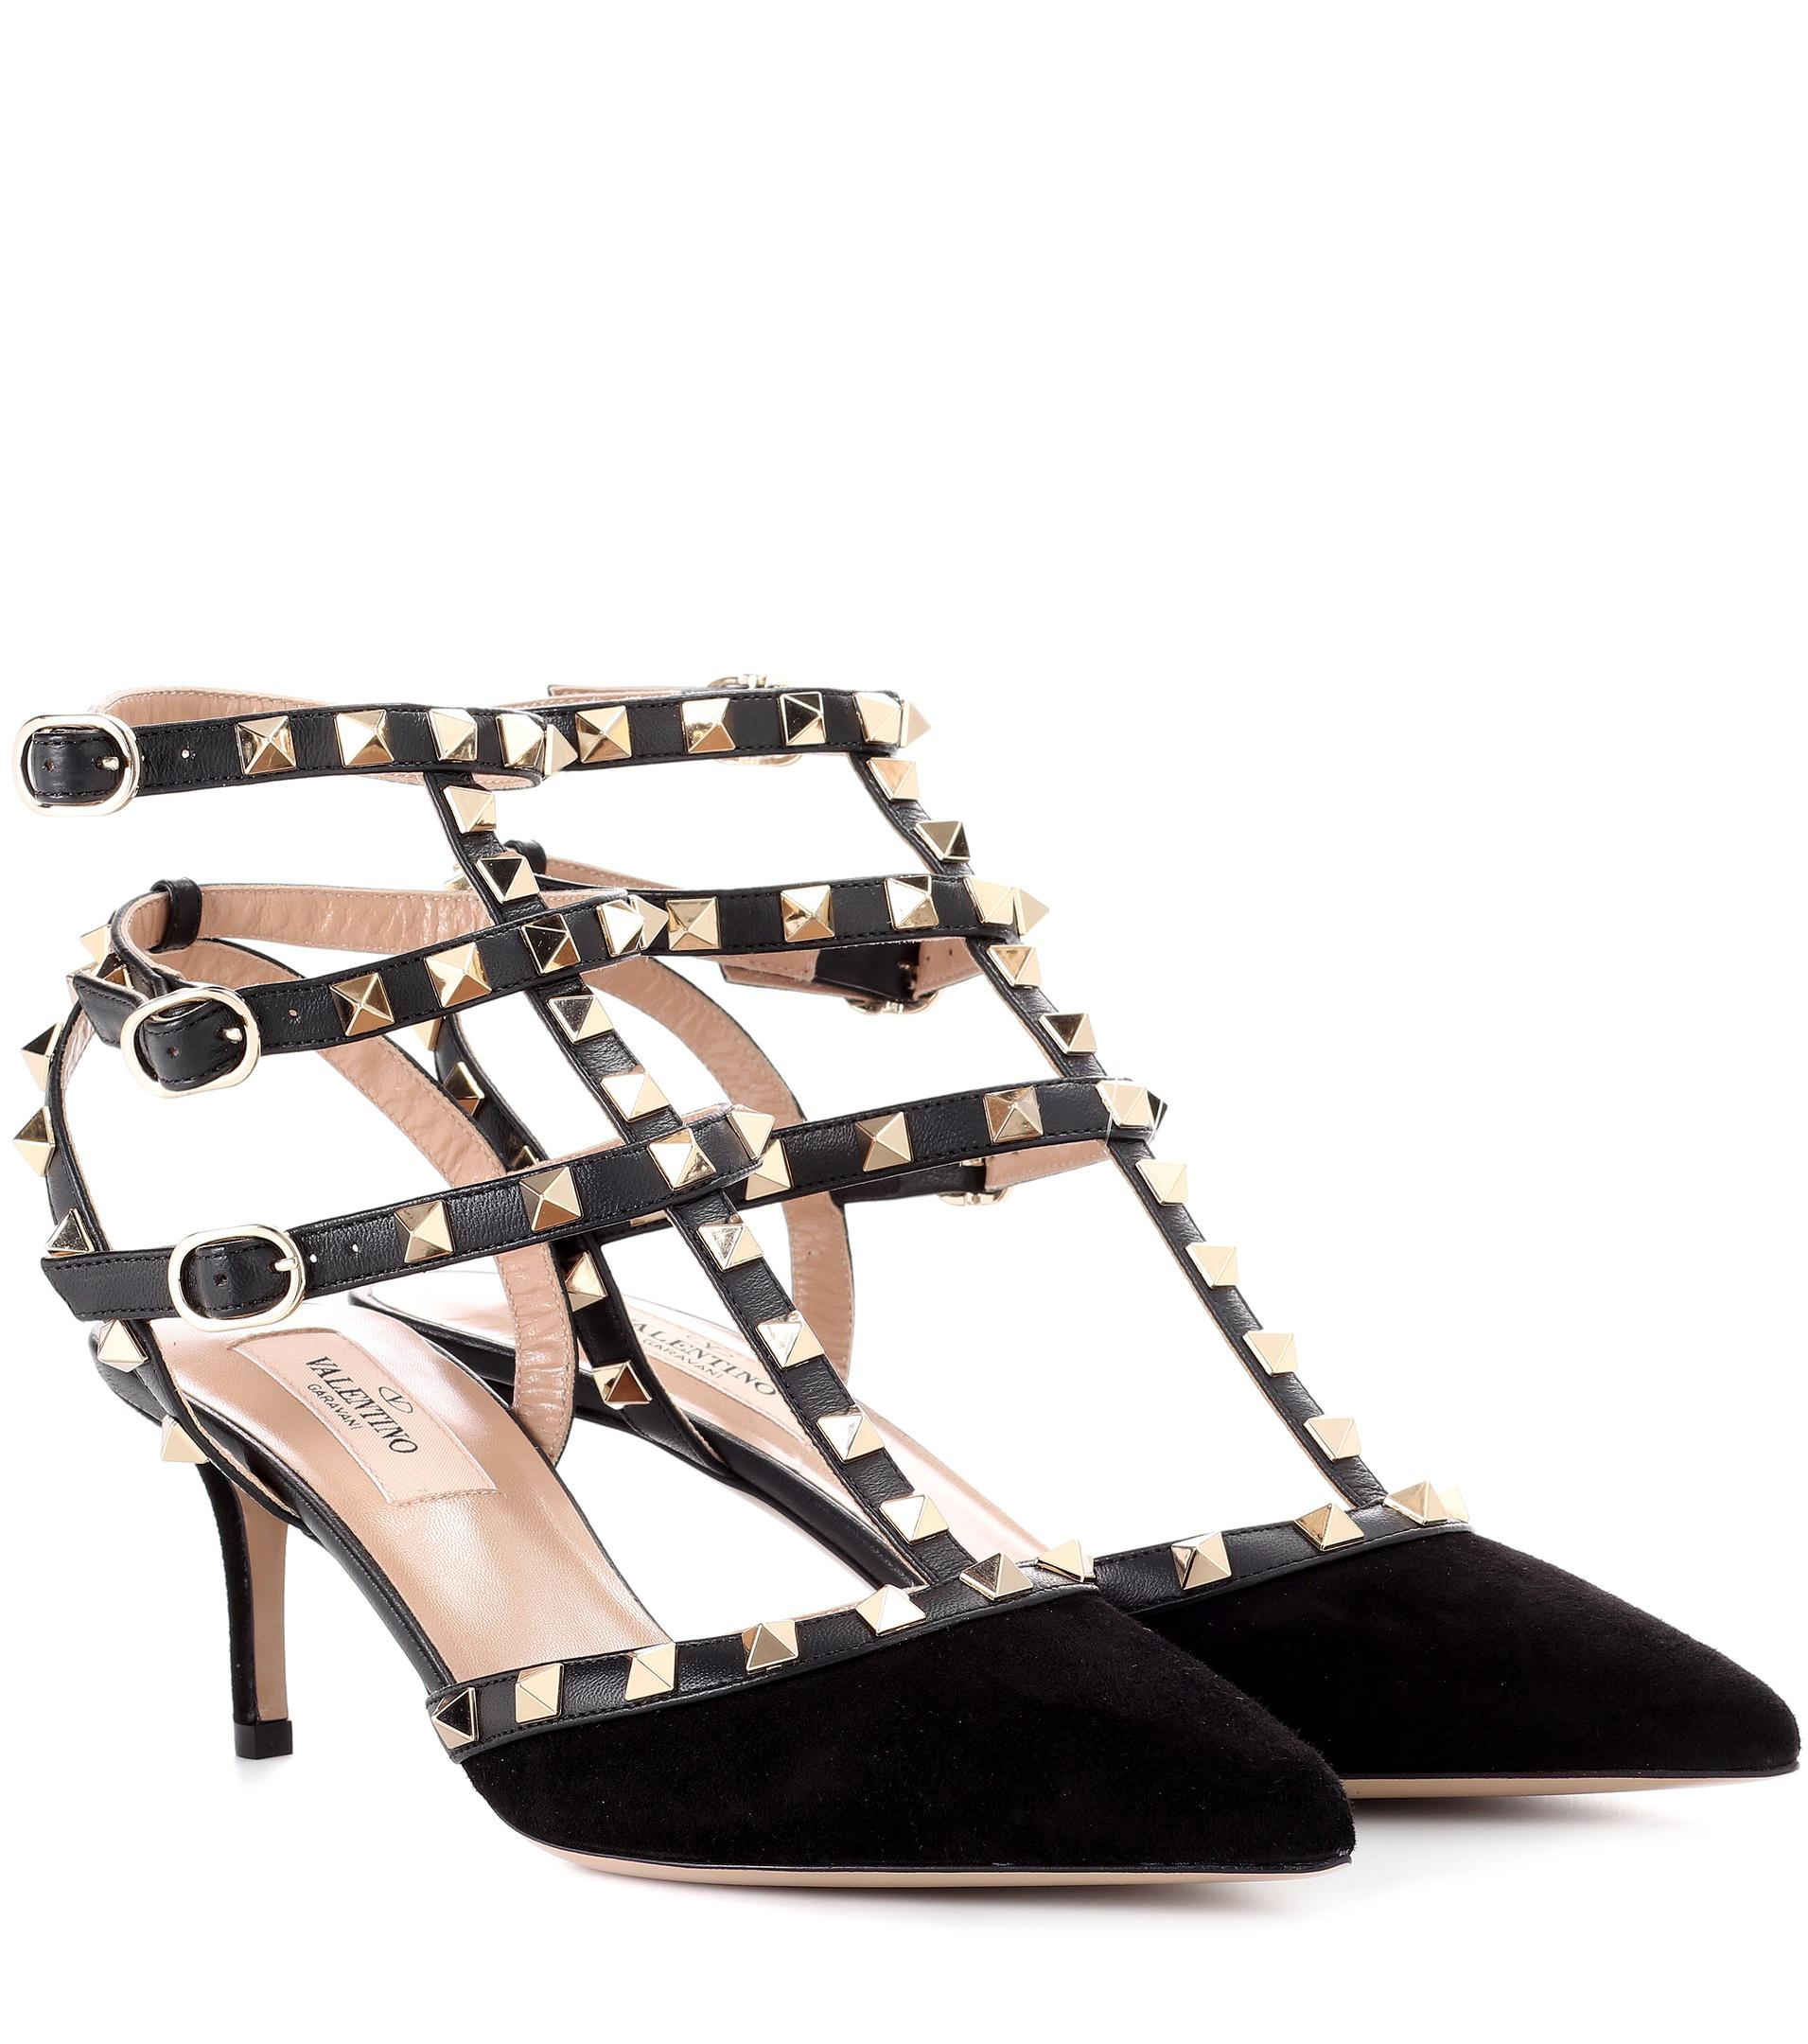 Valentino Garavani The Rockstud Suede And Leather Sandals - Black Valentino ilUvvc